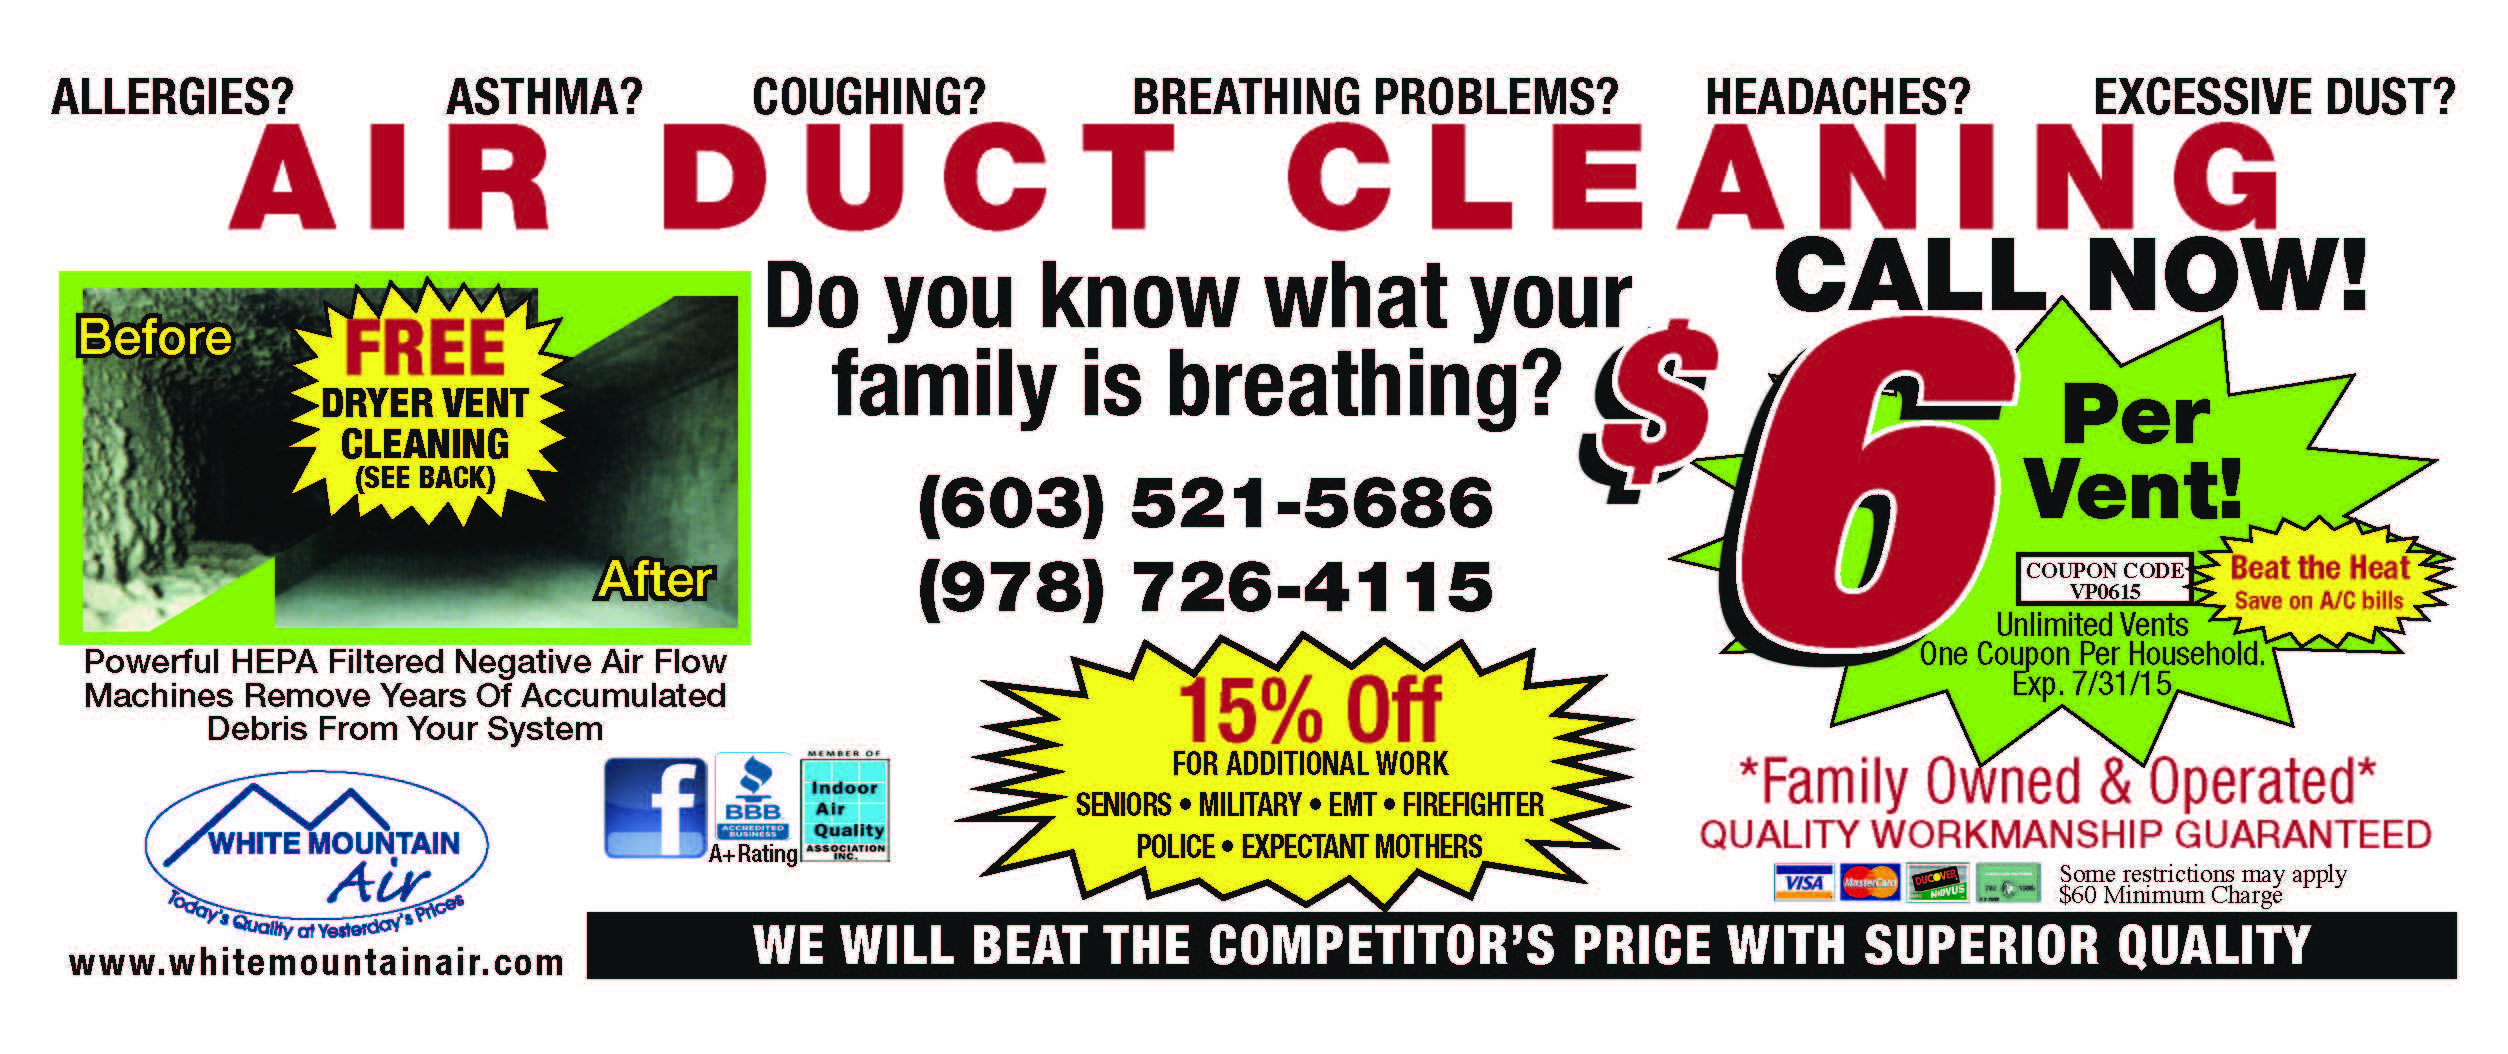 White Mountain Air. air duct cleaning specials rochester